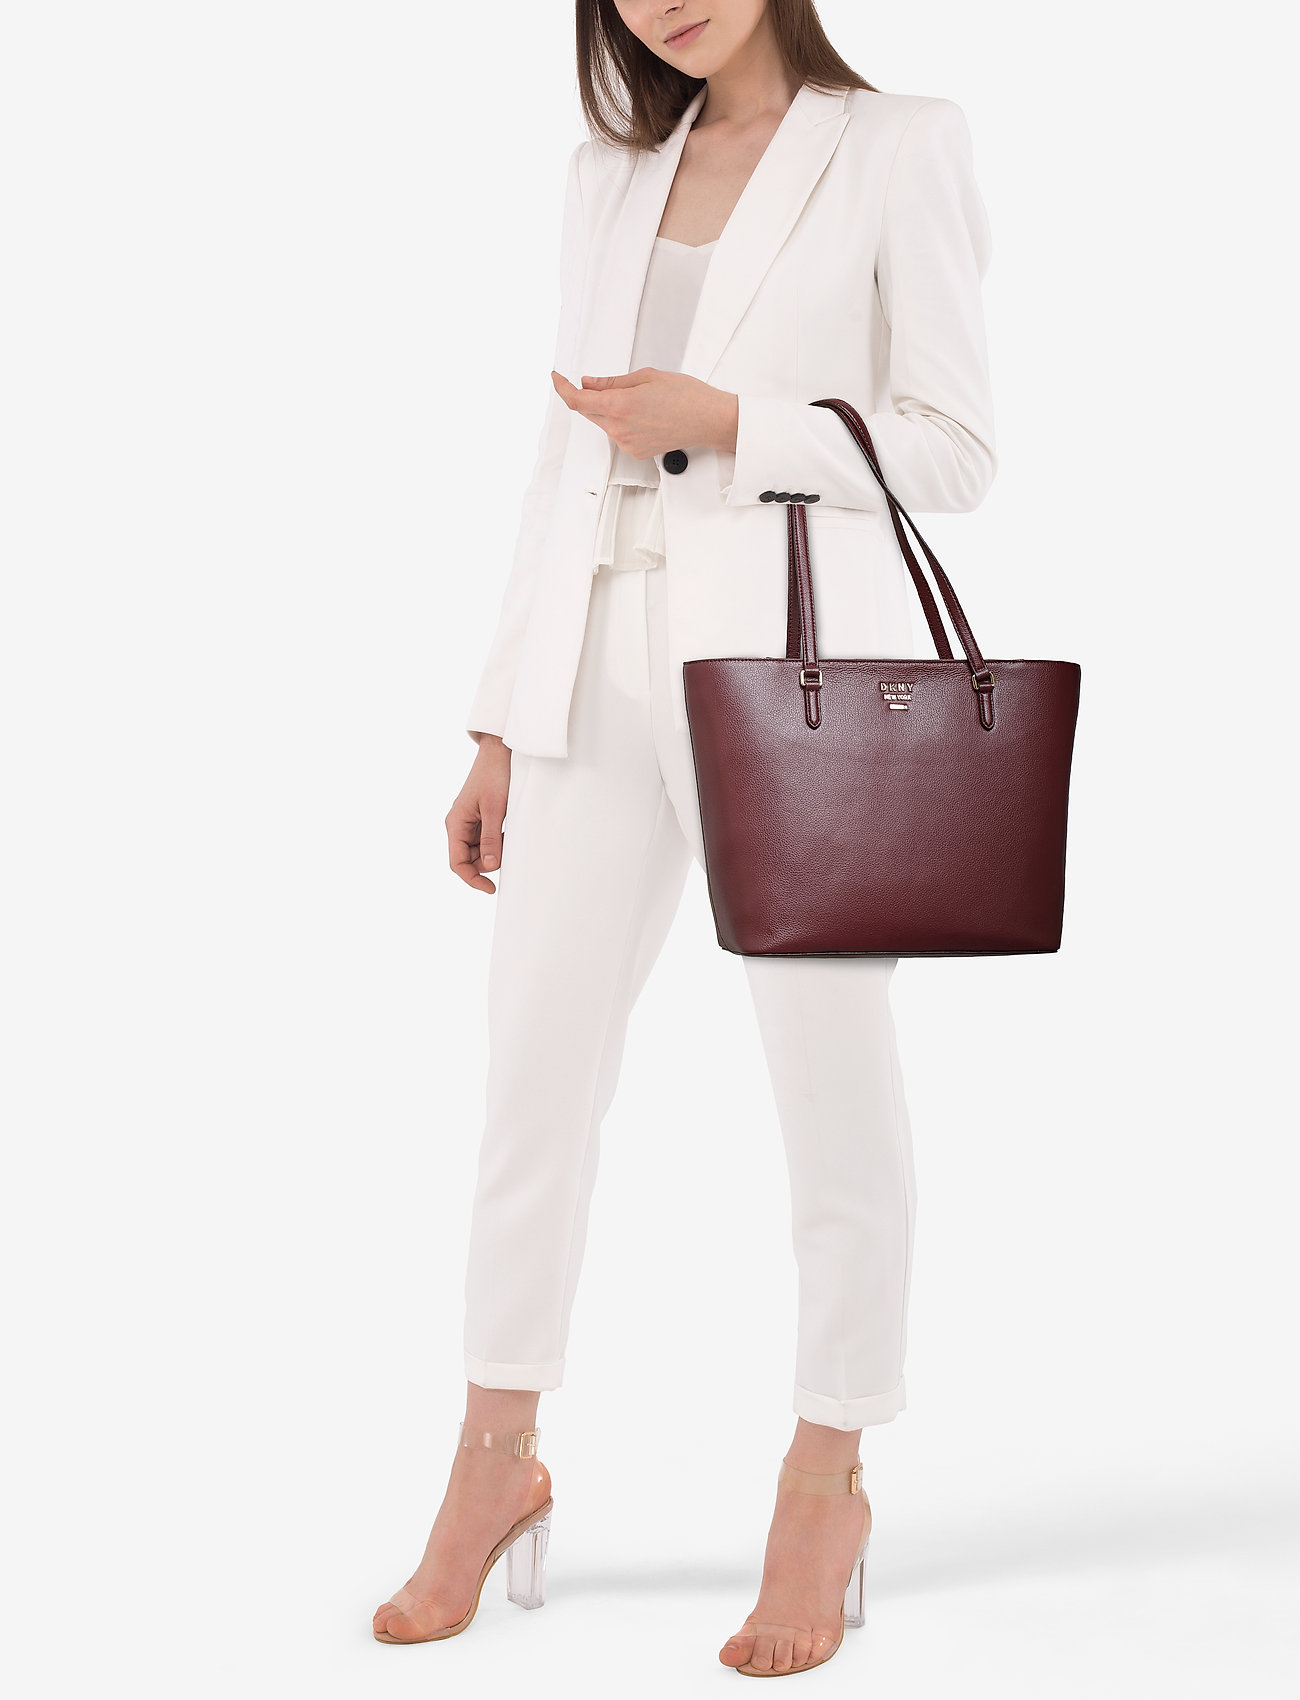 DKNY Bags WHITNEY-LG TOTE-PEBB - BLOOD RED